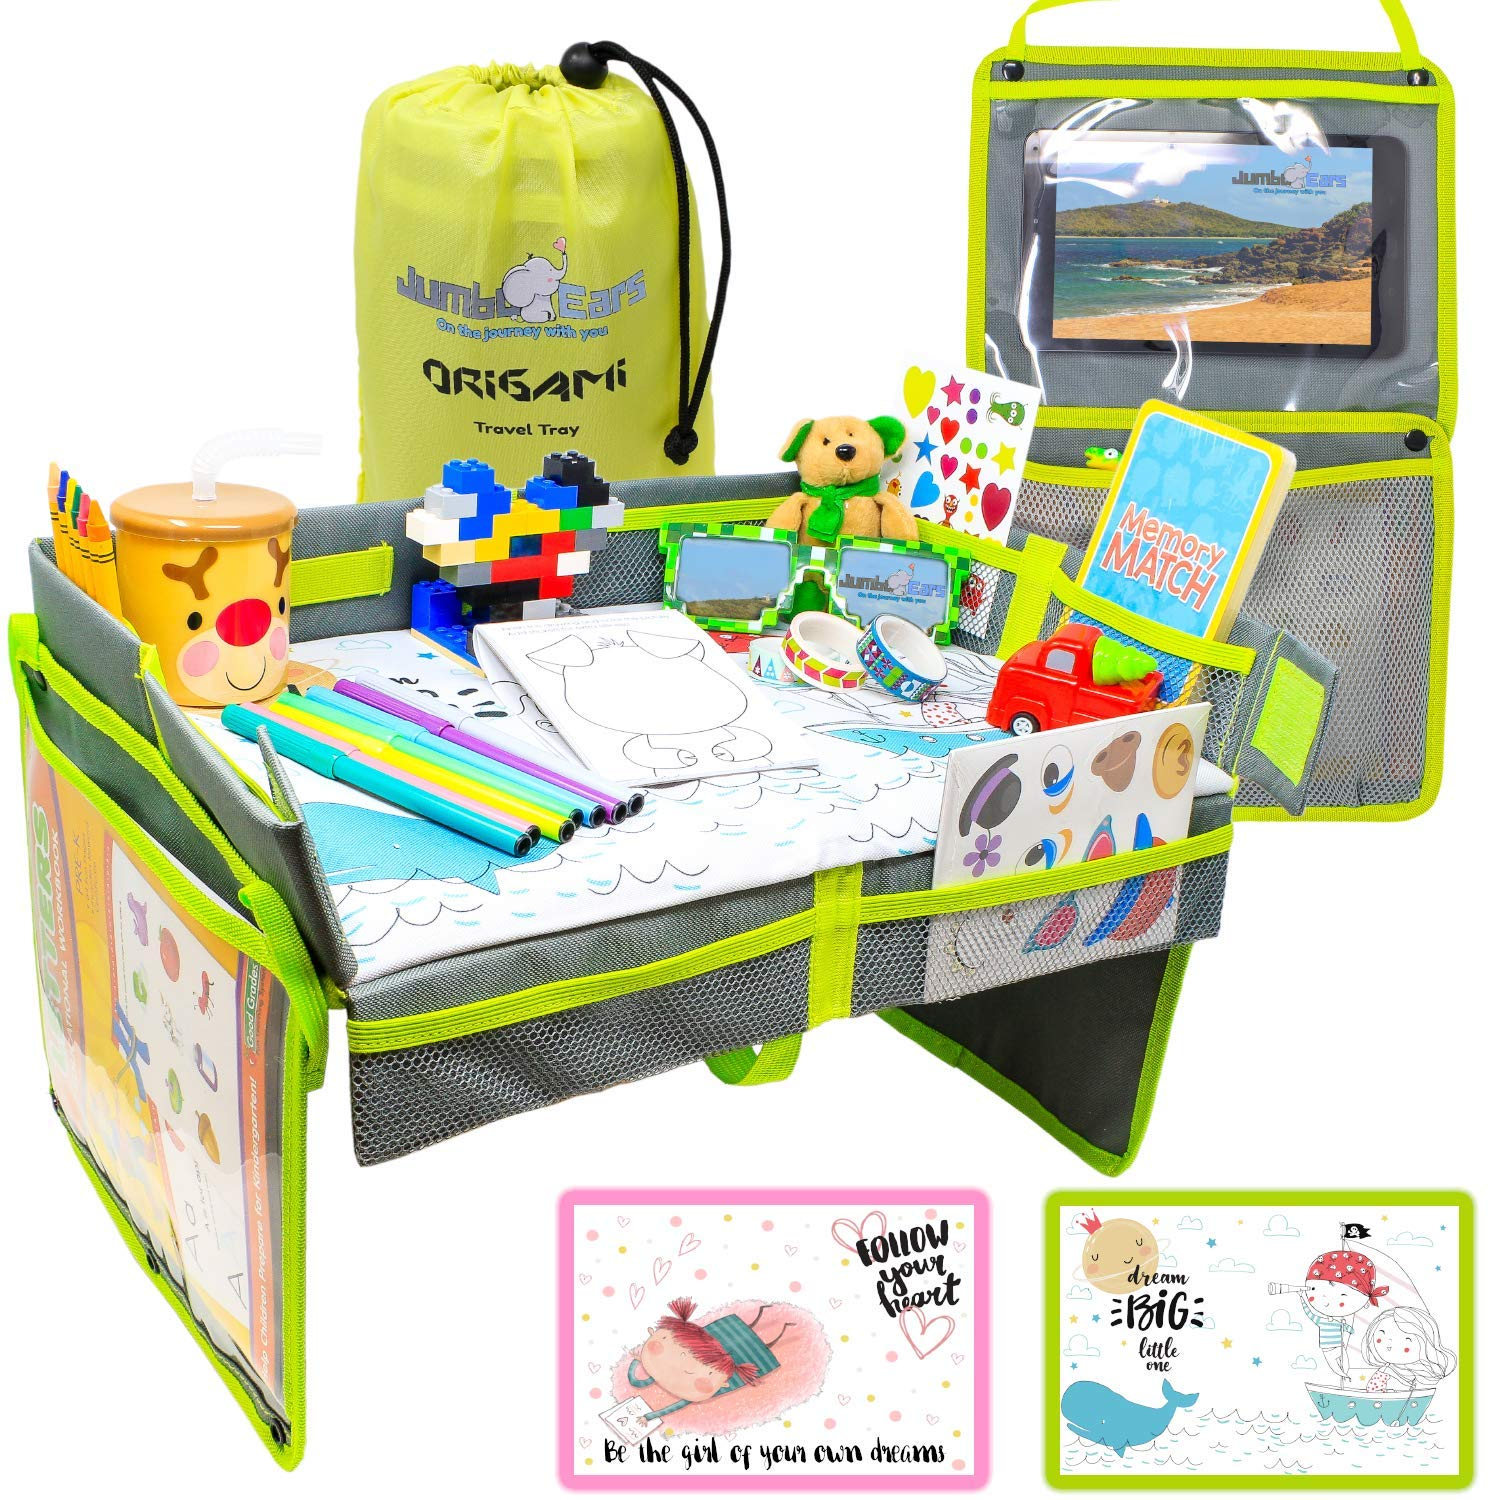 The Compact Foldable Kids Origami Travel Tray travel product recommended by Alfred Fontanez on Lifney.